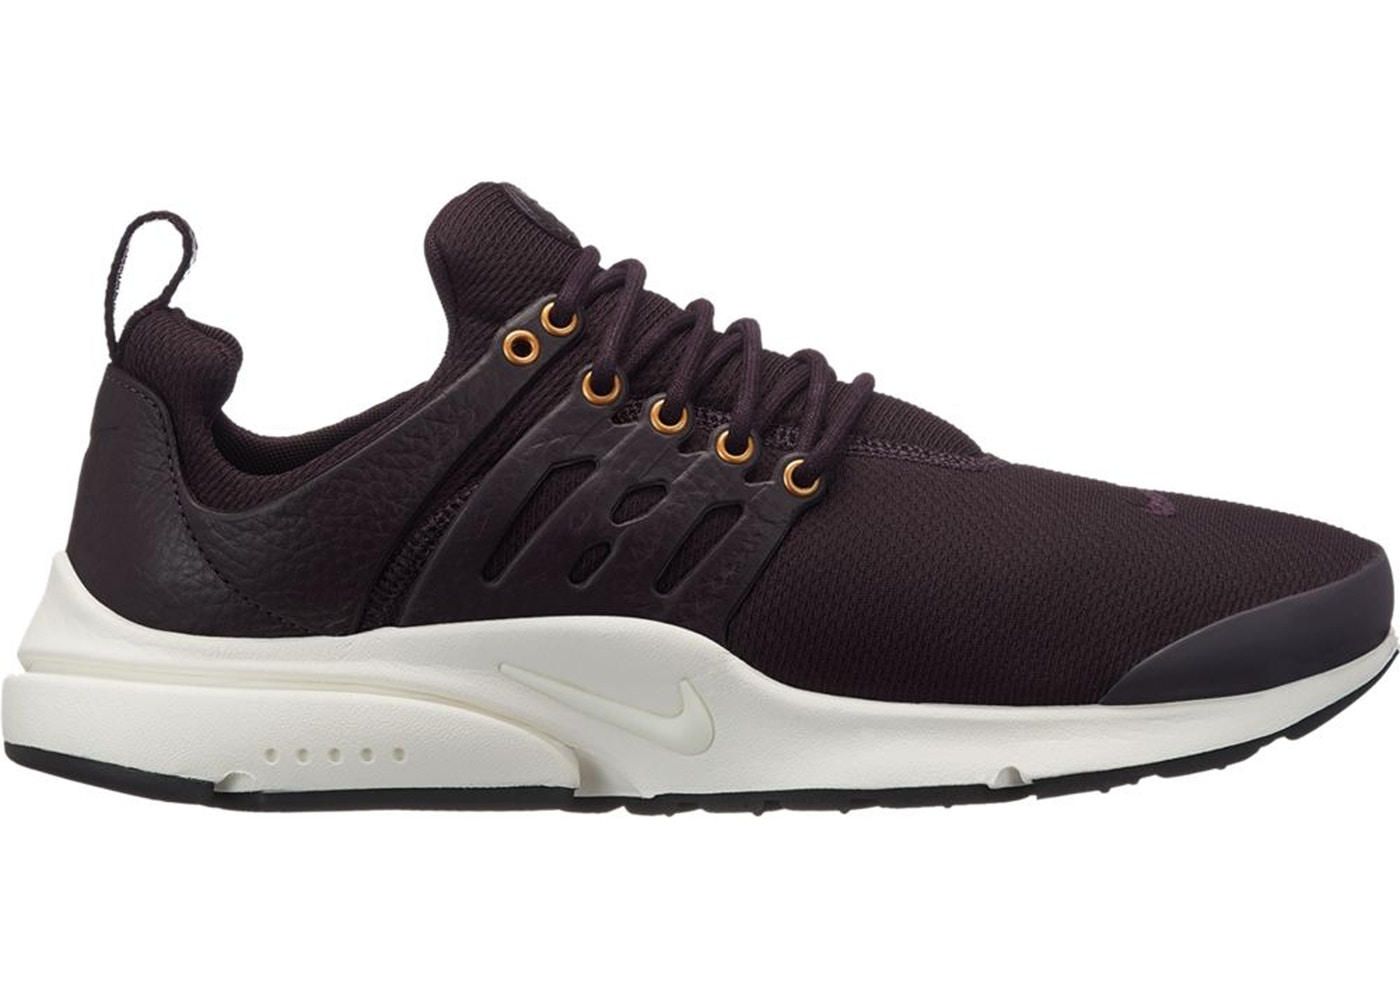 5278d93173dad Air Presto Premium Burgundy Ash - 848141-600